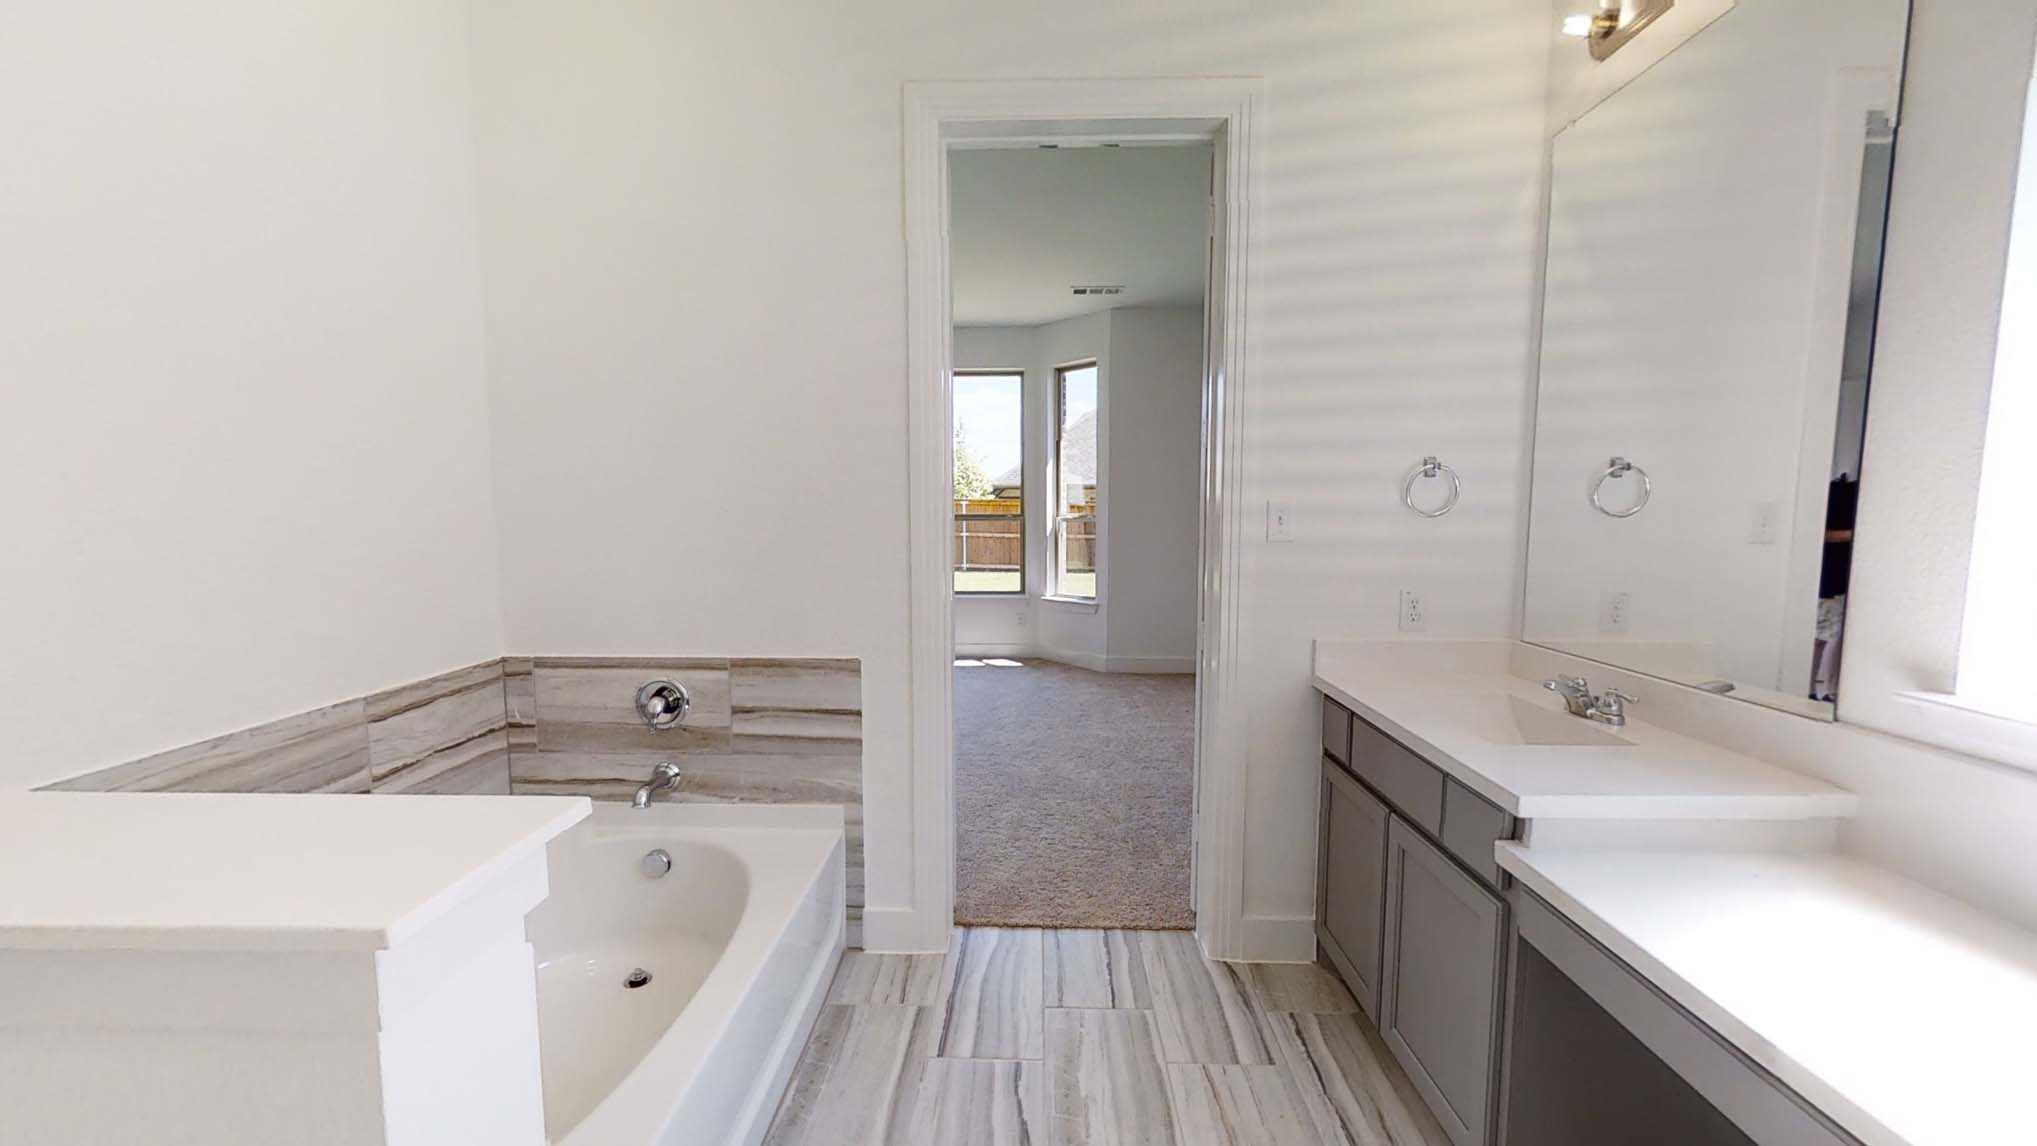 Bathroom featured in the Plan Blenheim By Highland Homes in Dallas, TX